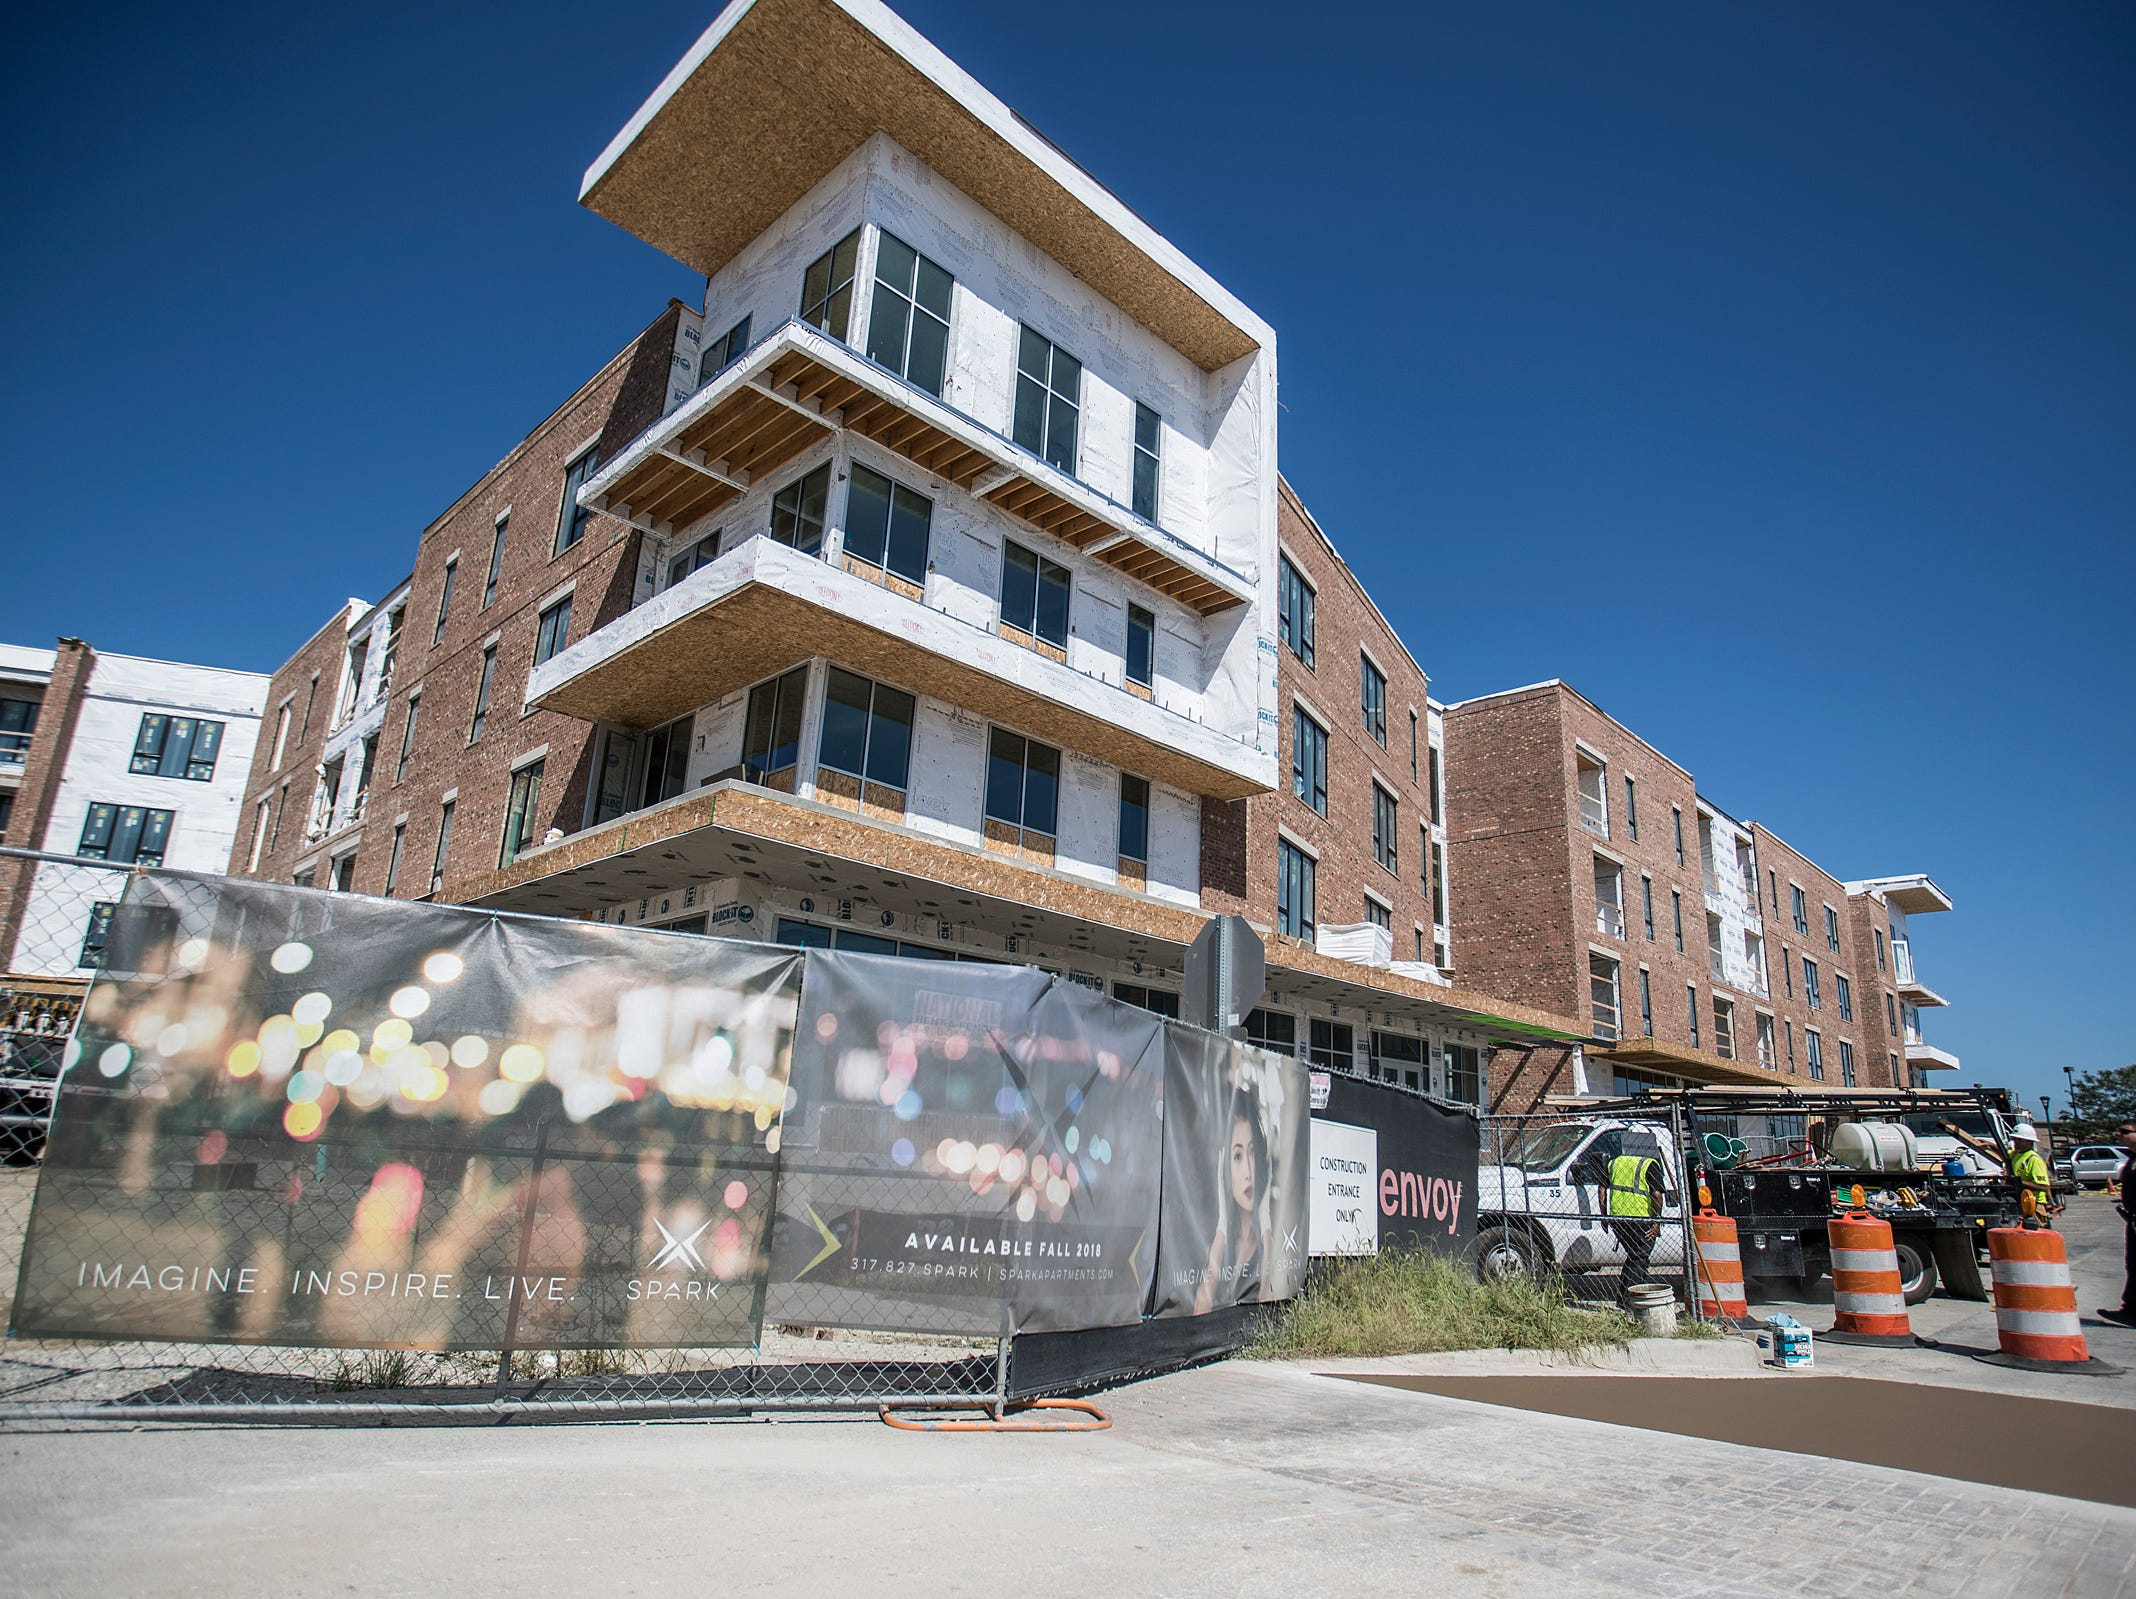 The mid-construction Spark Apartments in Fishers, Ind., are seen on Friday, Sept. 14, 2018. The apartments, at North Street and Lantern road, will 200 offer one-, two- and three-bedroom apartment units and 11 live/work spaces.